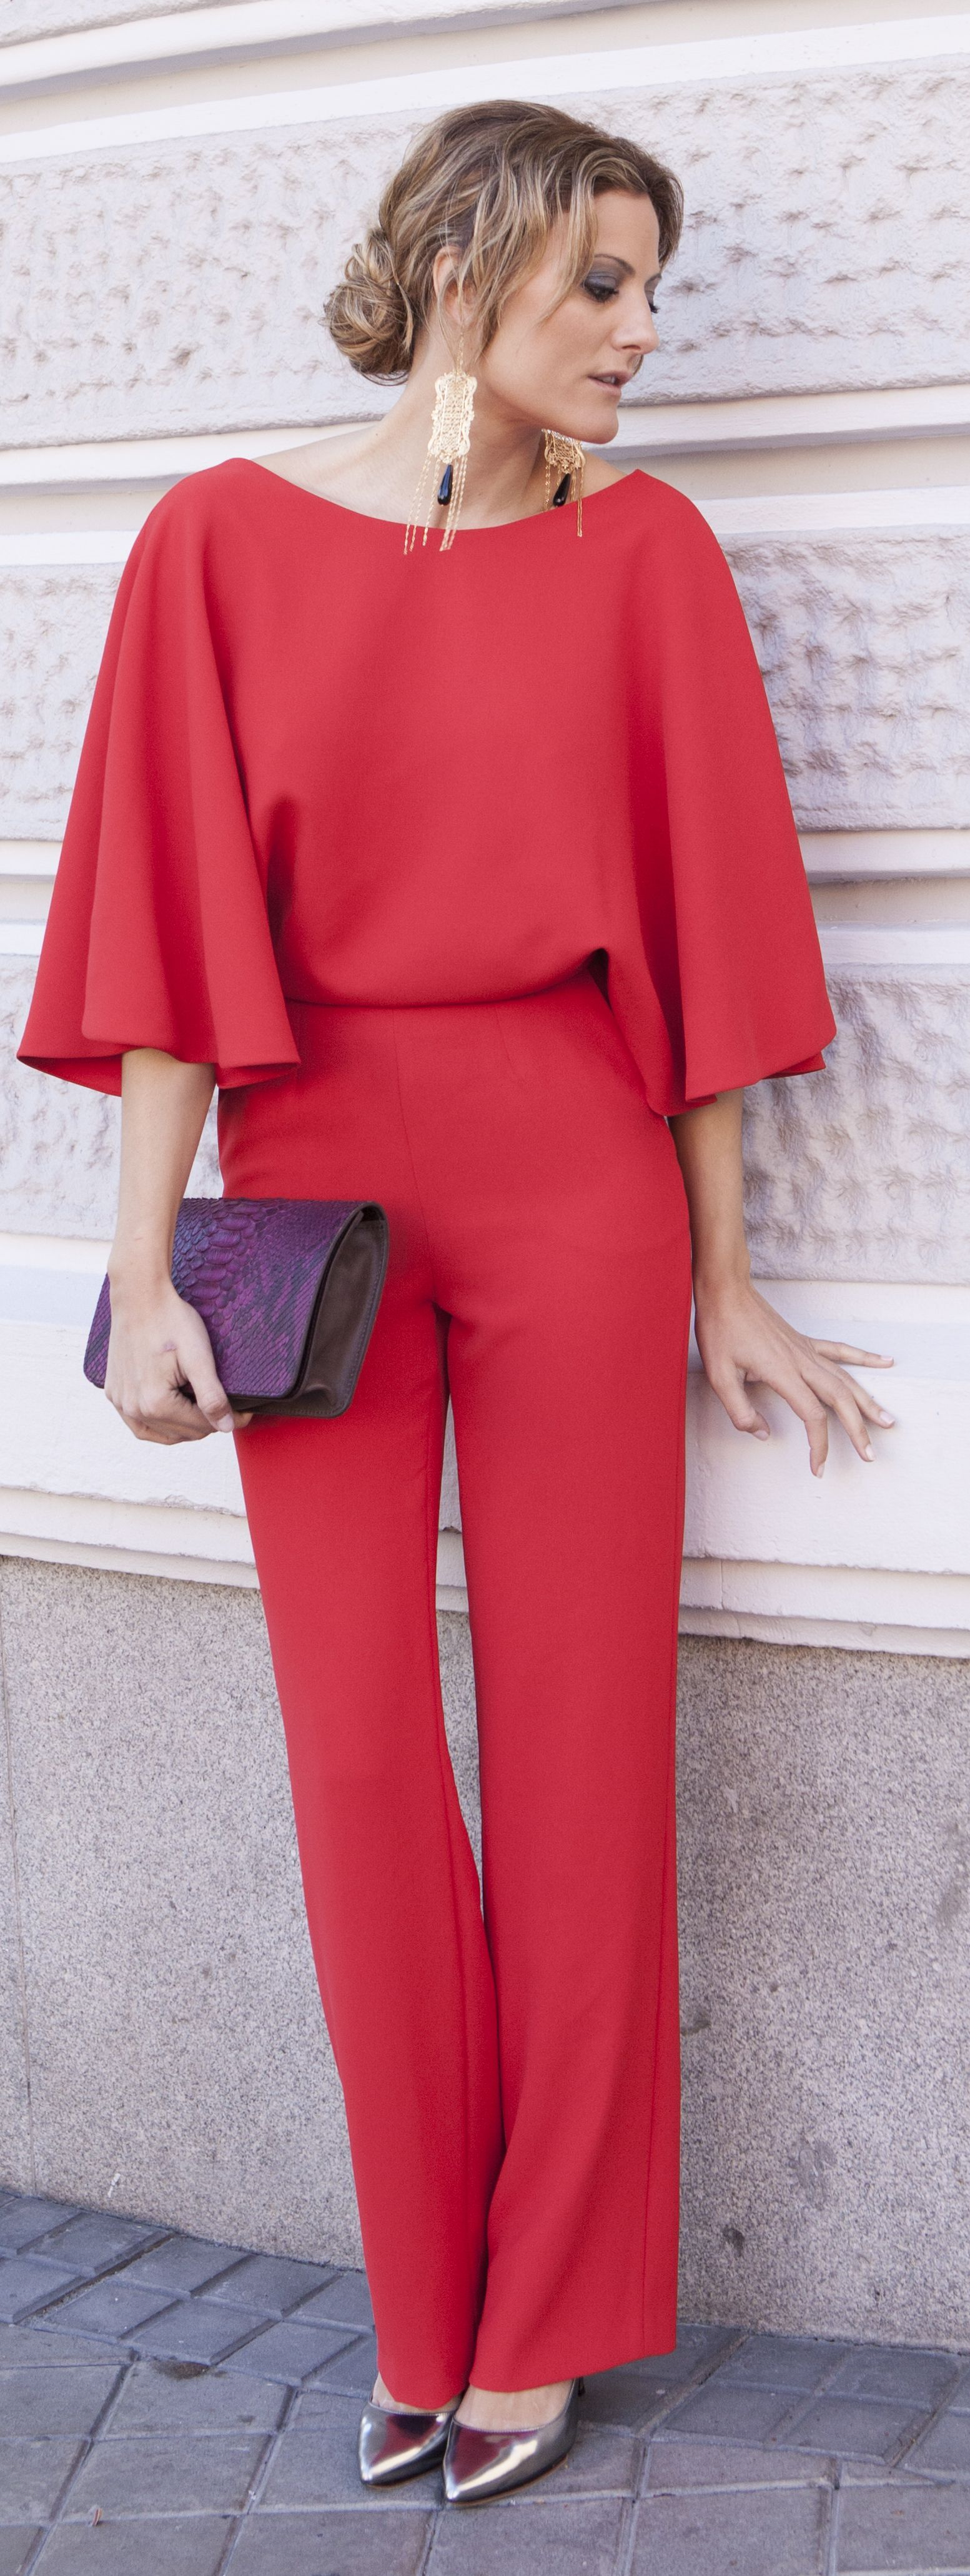 Red Jumpsuit Party Style Glam Spring Fashion Outfits